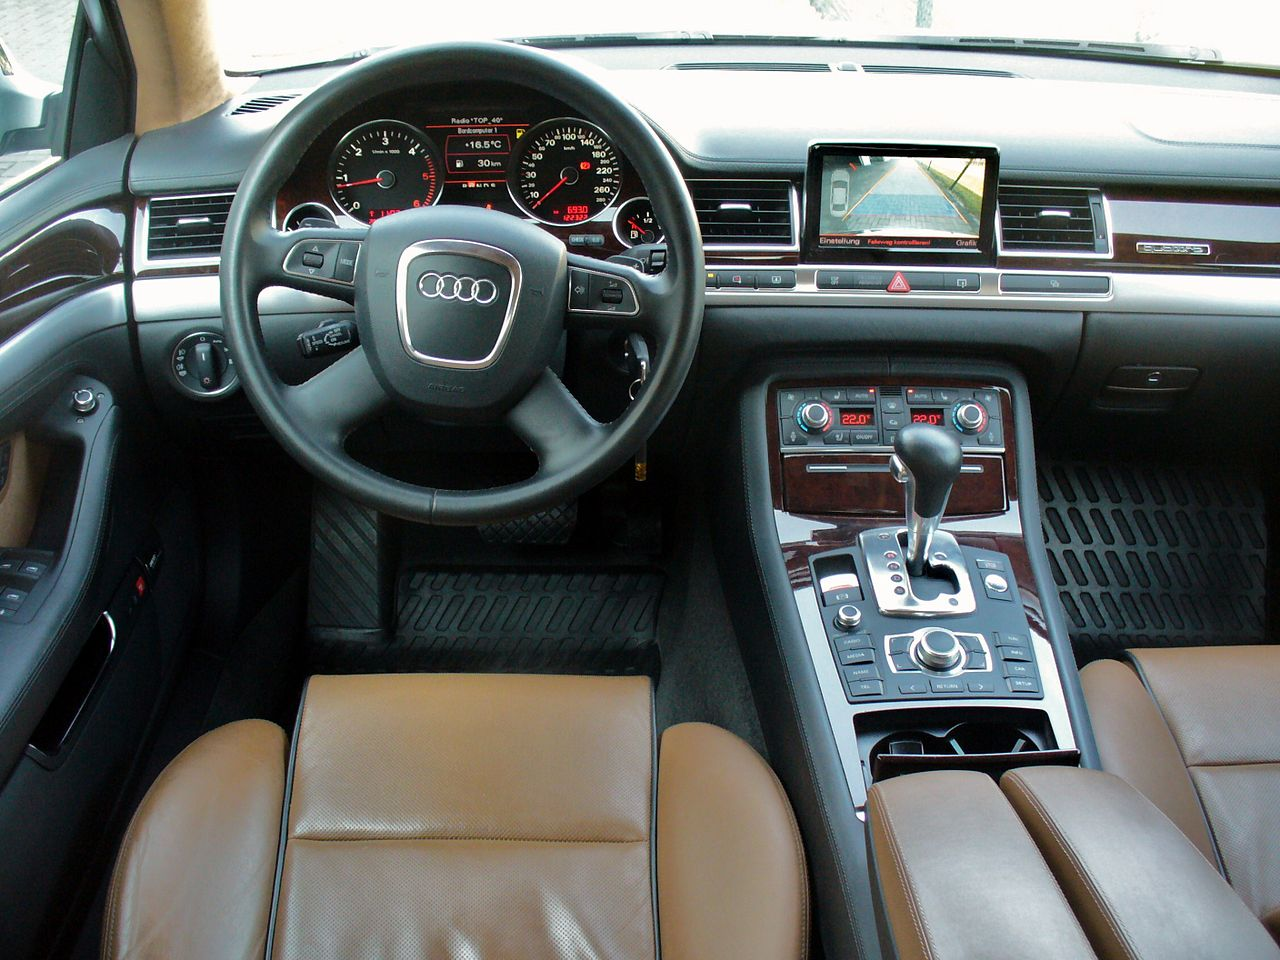 file audi a8 4 2 tdi quattro tiptronic interieur jpg wikimedia commons. Black Bedroom Furniture Sets. Home Design Ideas